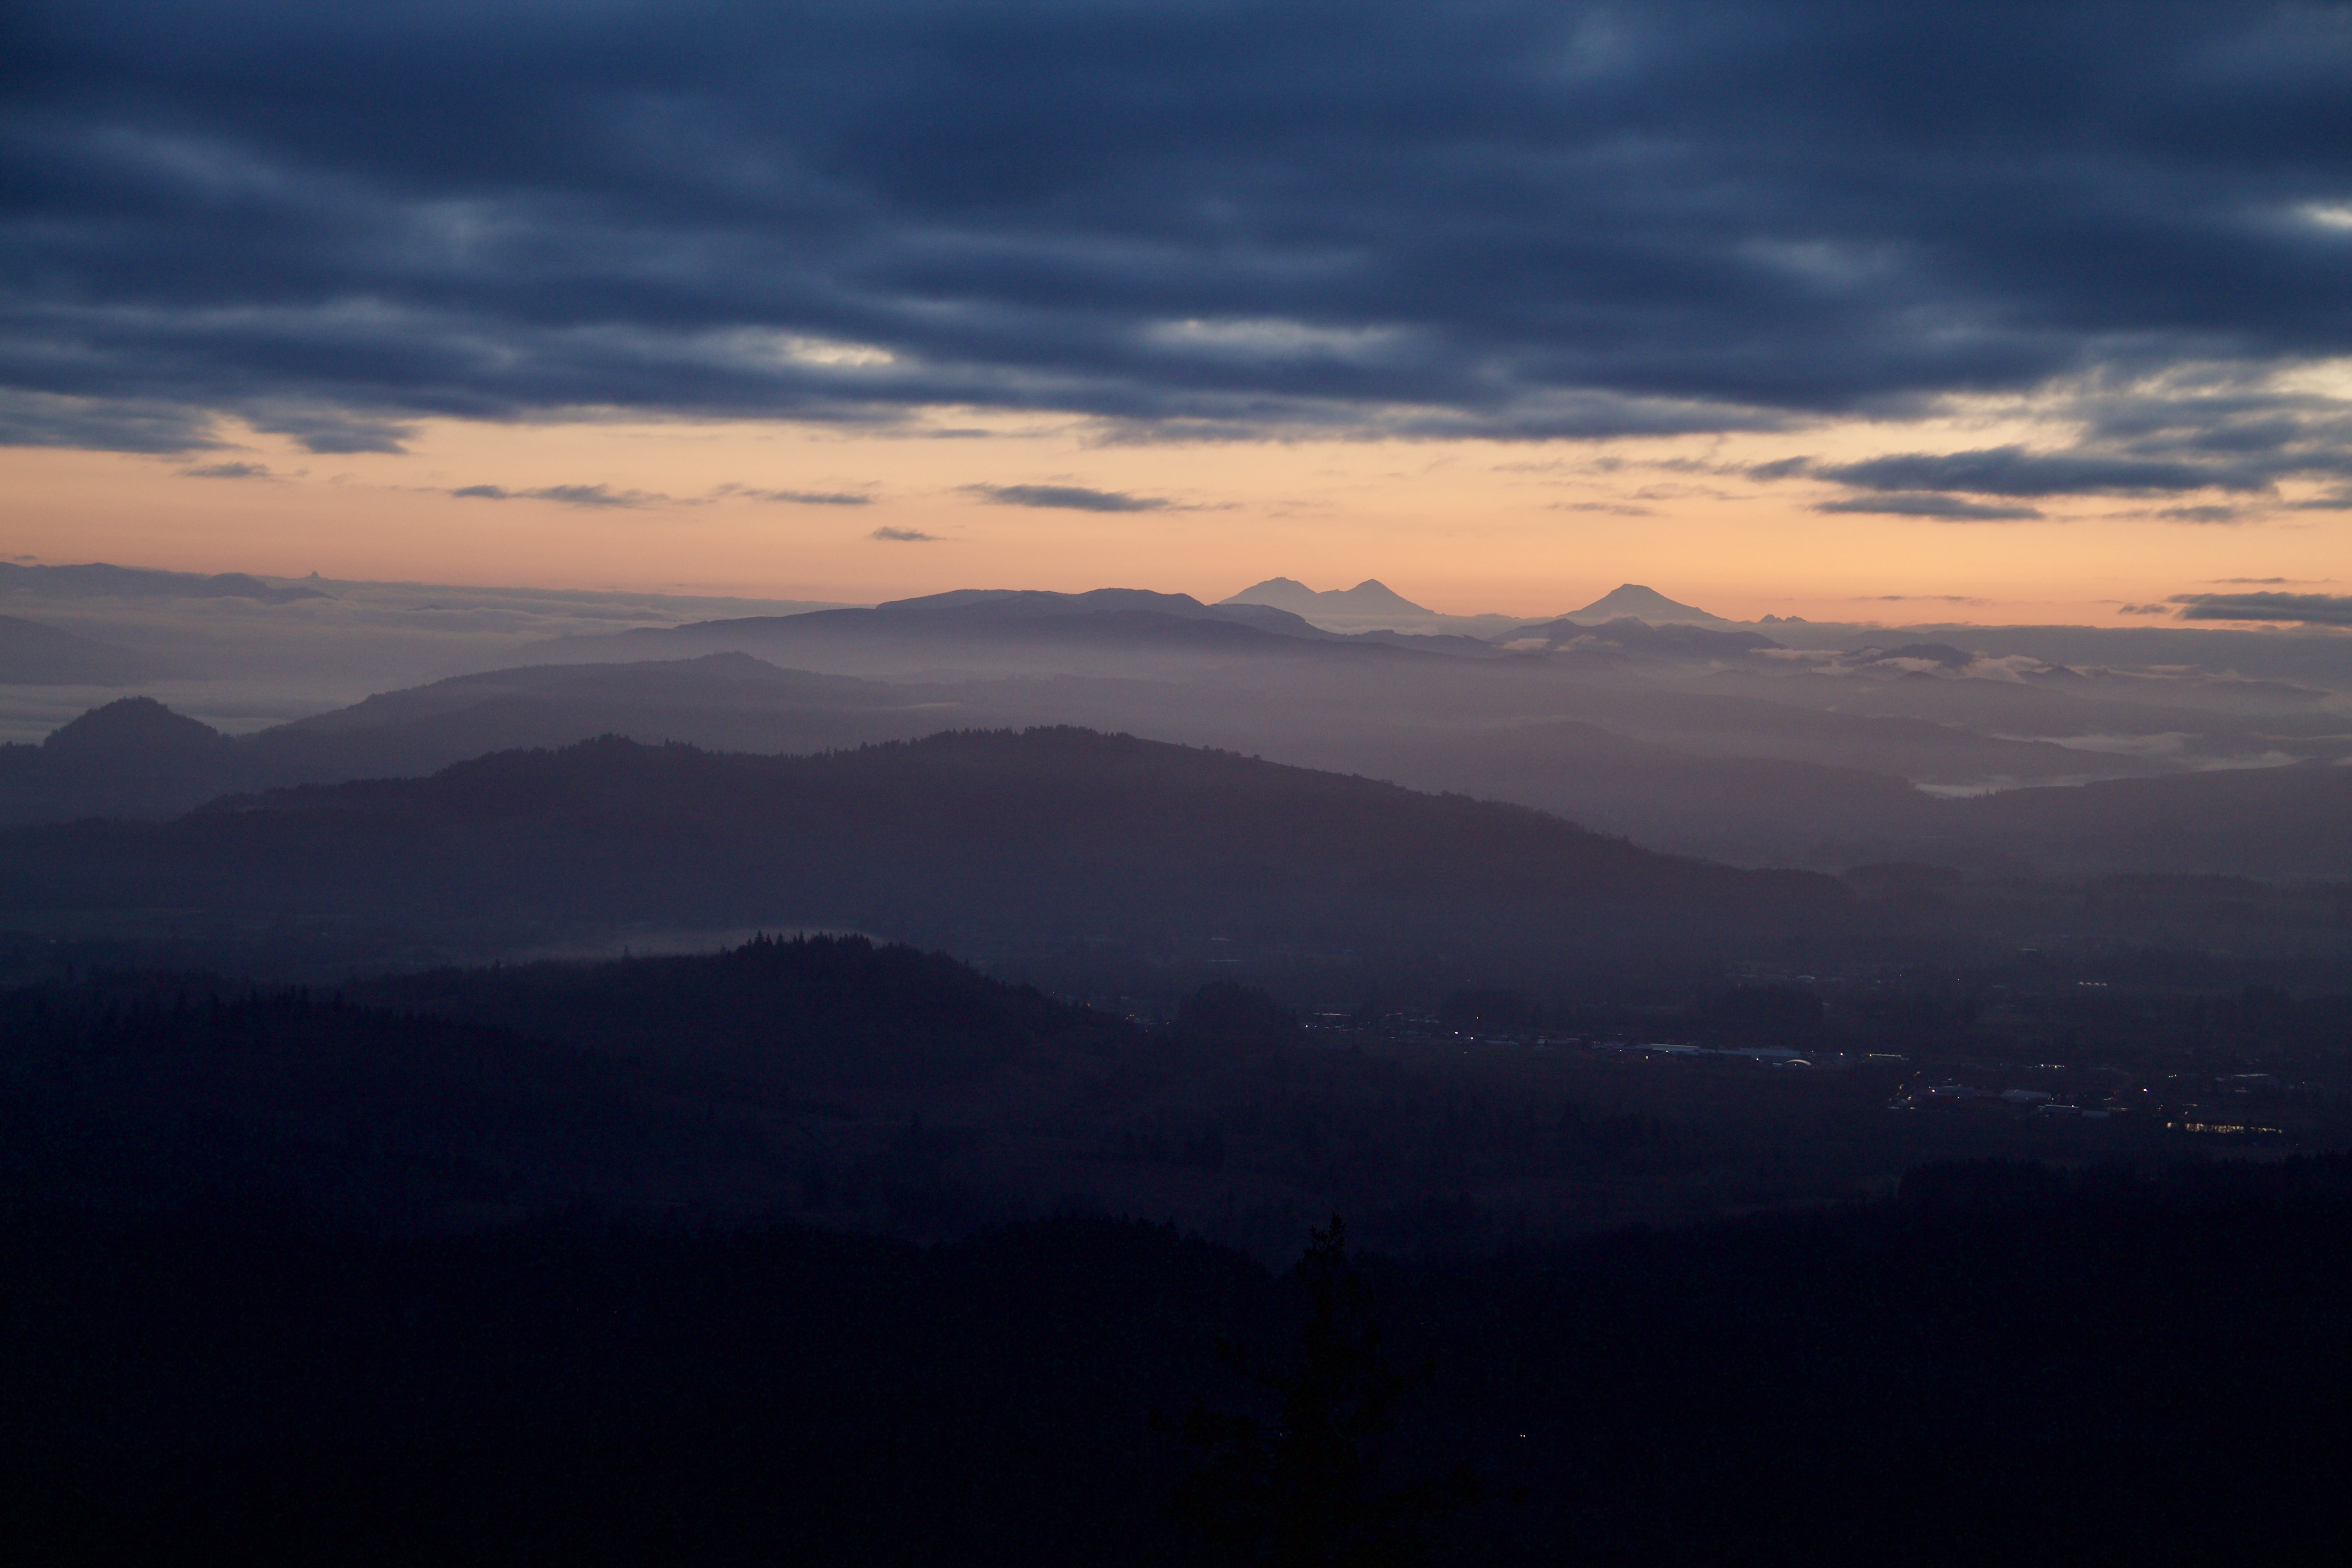 3 sisters right before dawn, with dark clouds above